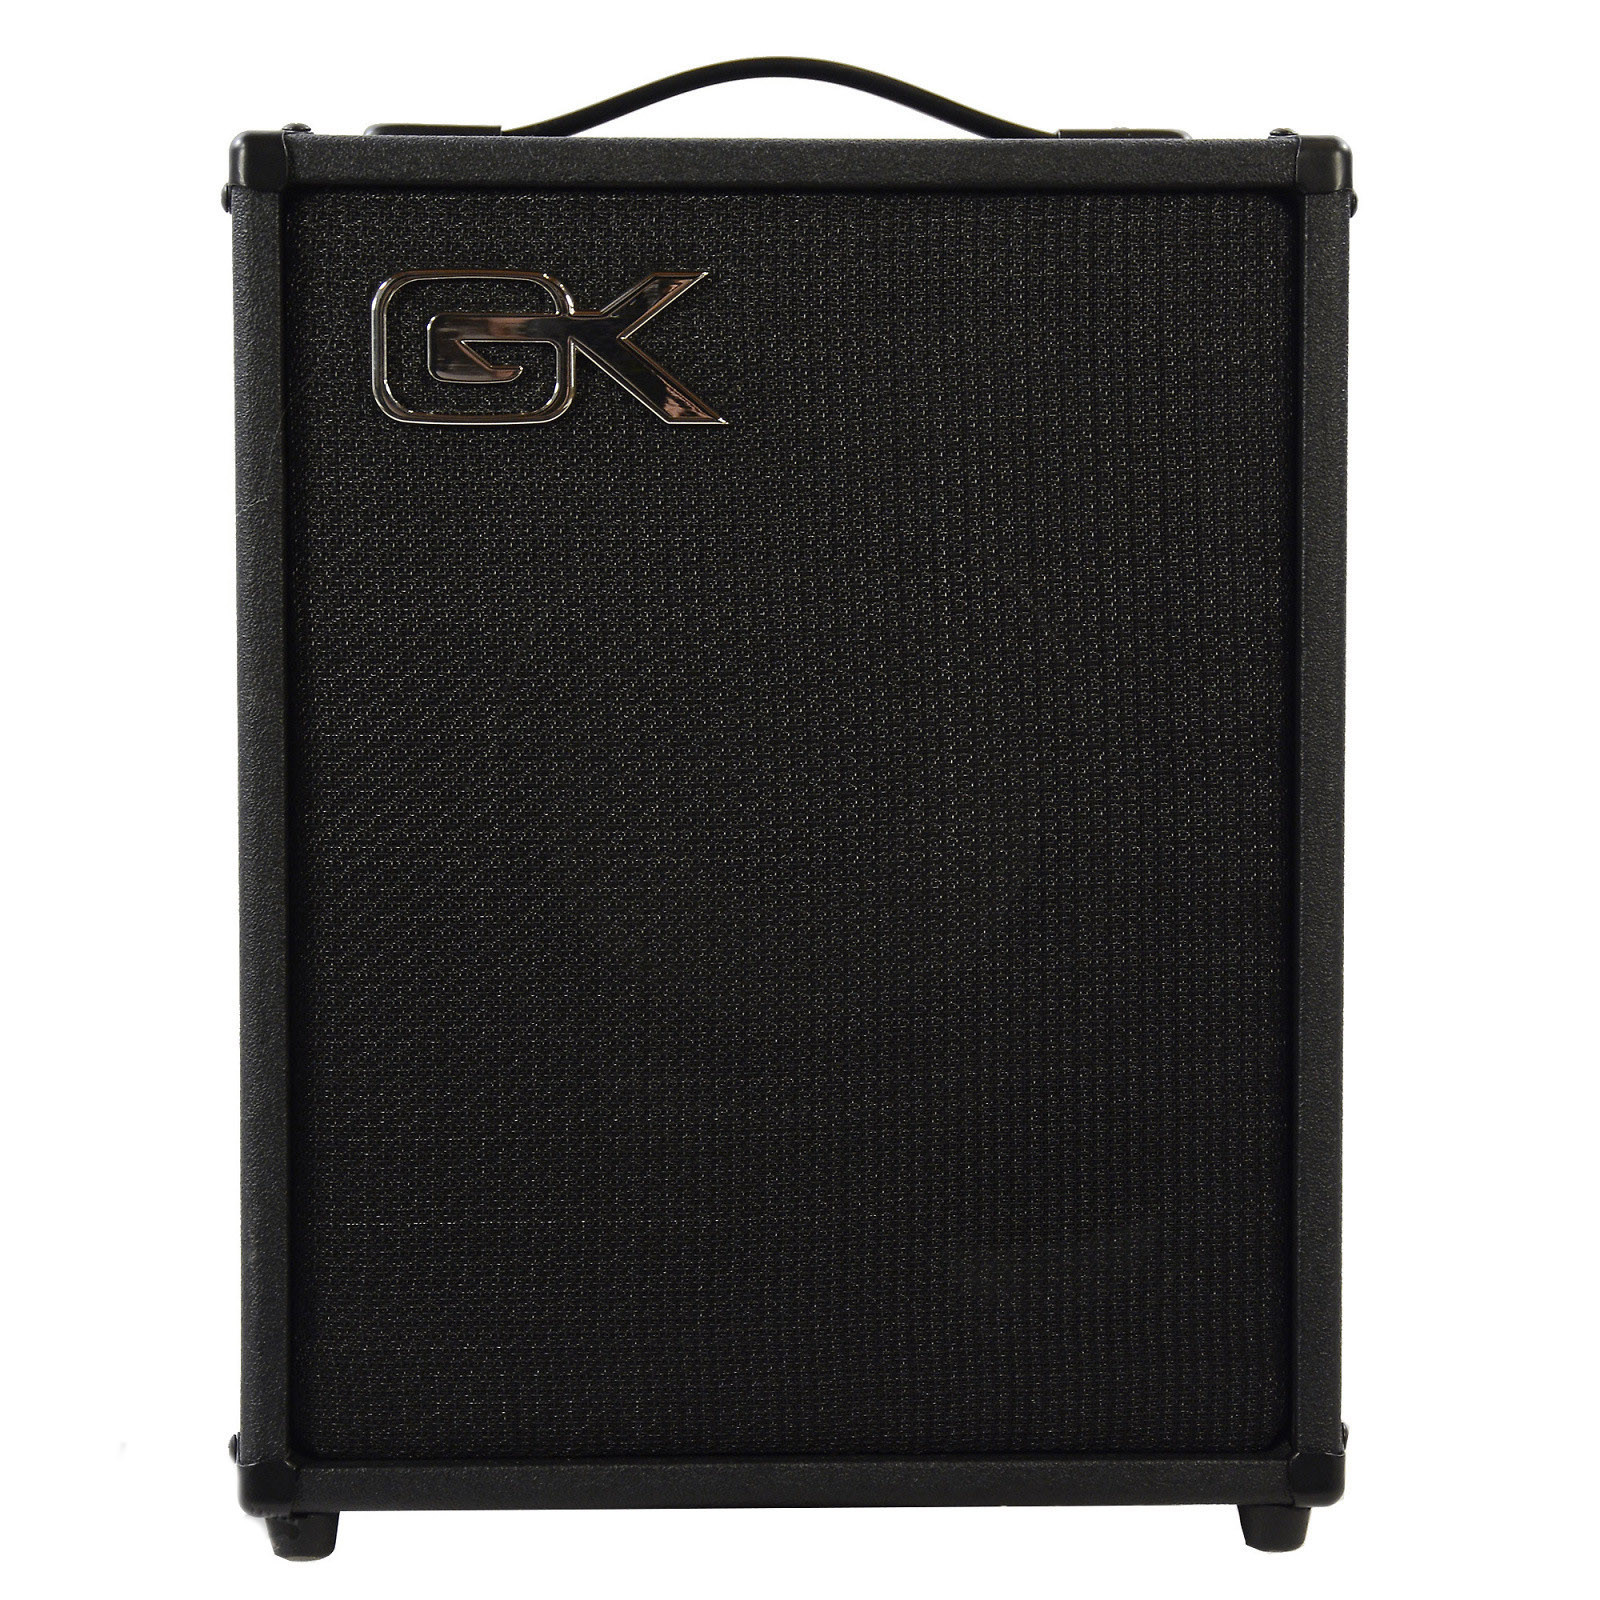 Gallien-Krueger MB-108 Ultra Light Bass Combo by Gallien-Krueger